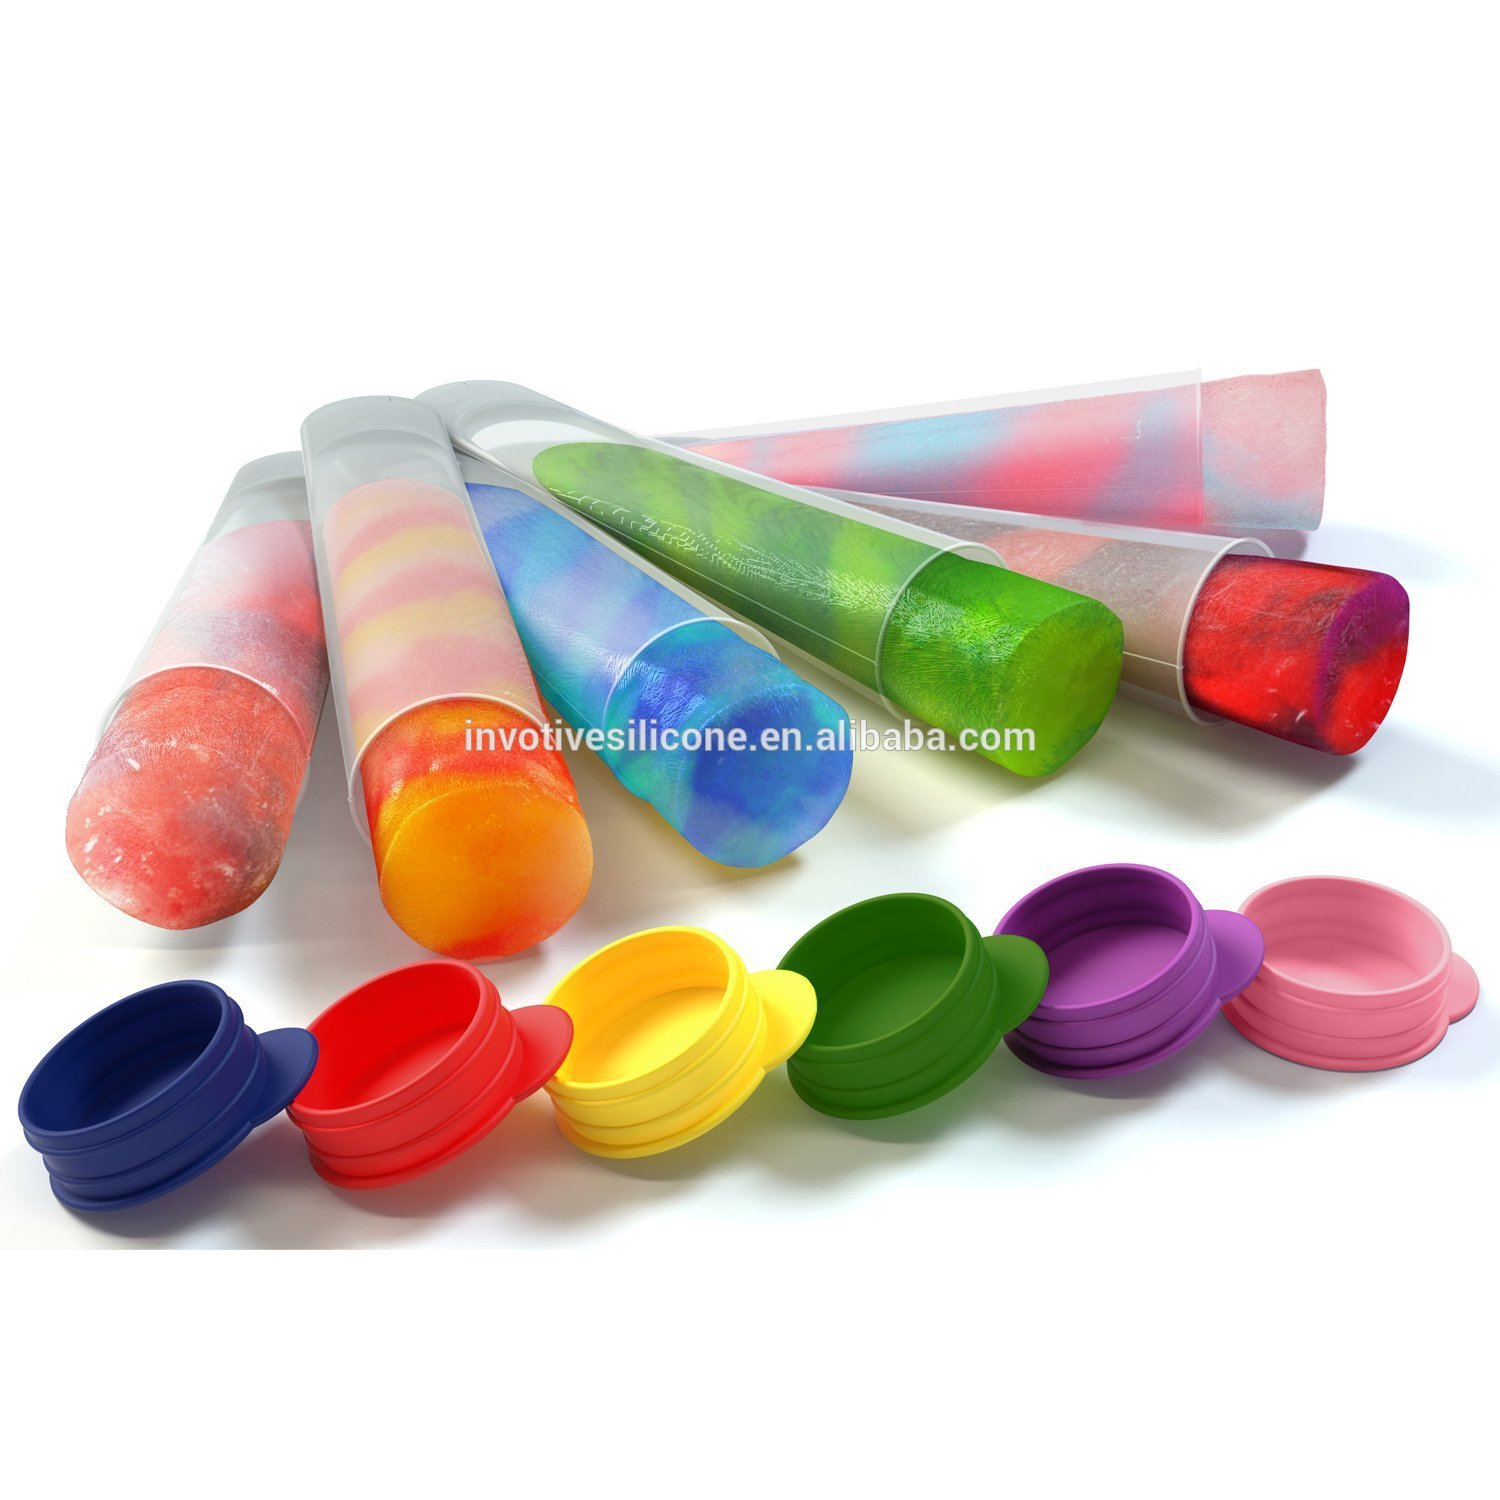 BPA free Food grade silicone ice lolly mould ice cream popsicle molds for ice pop DIY